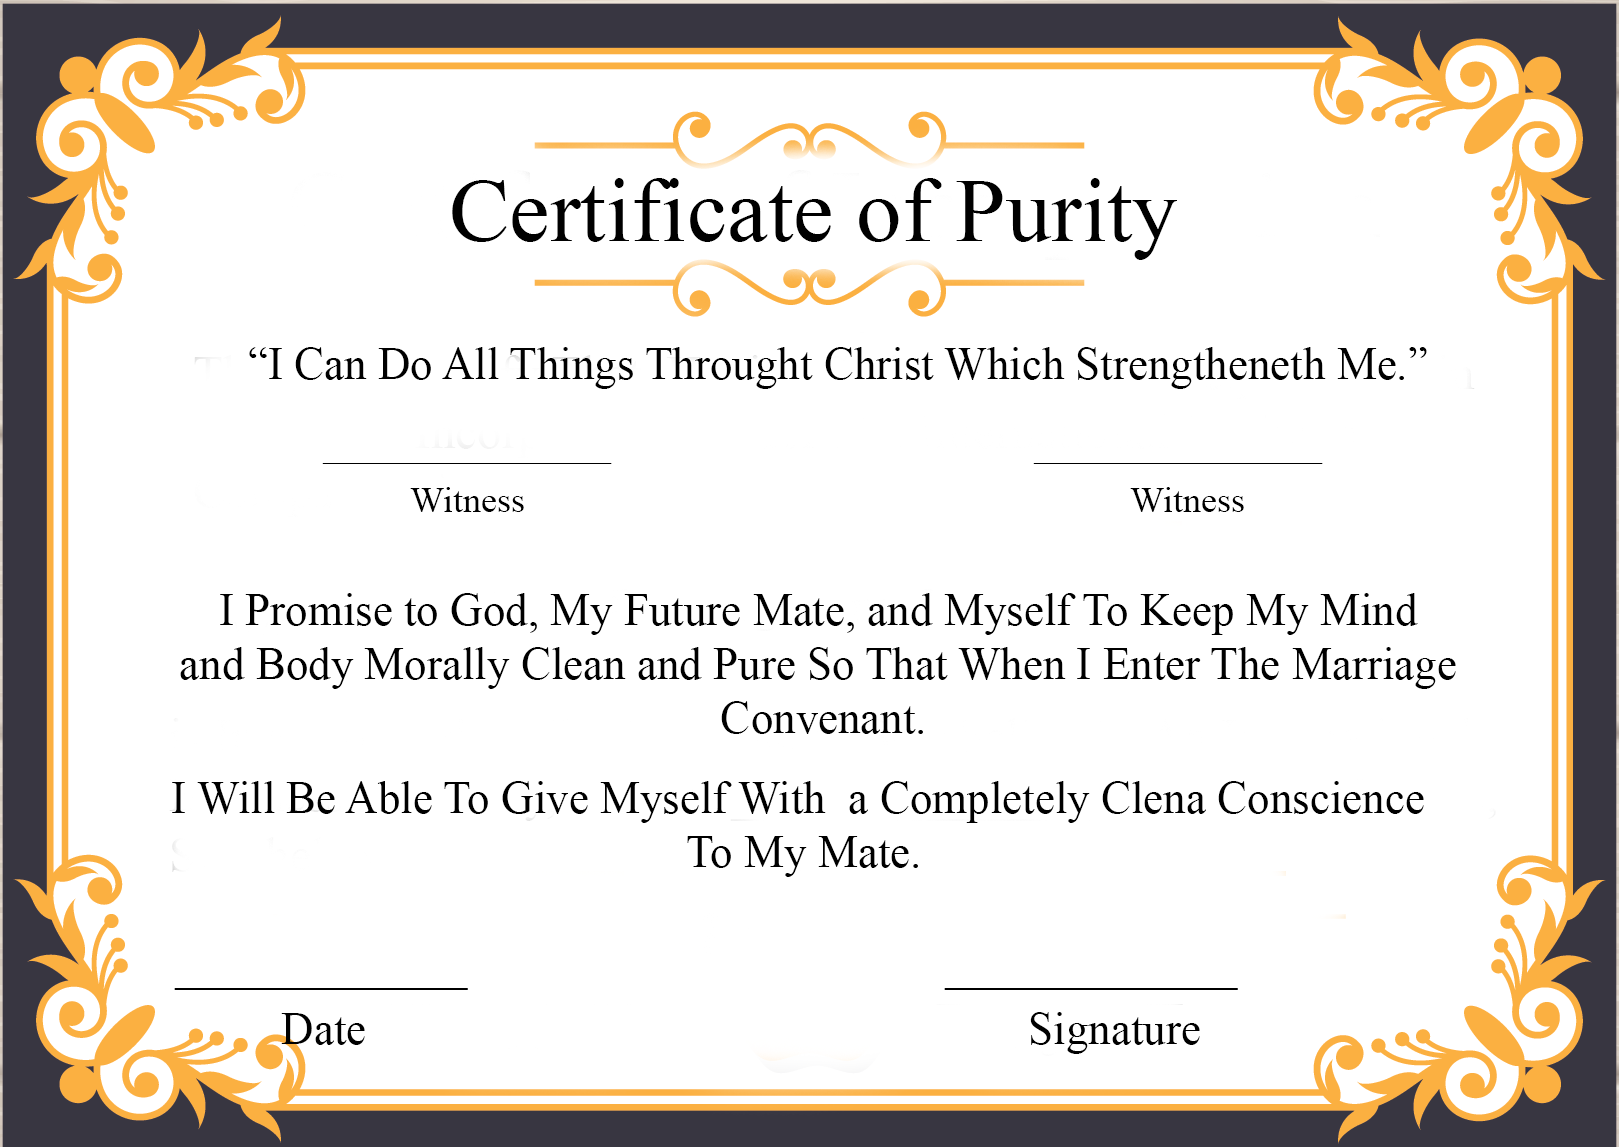 Certificate of Purity Sample